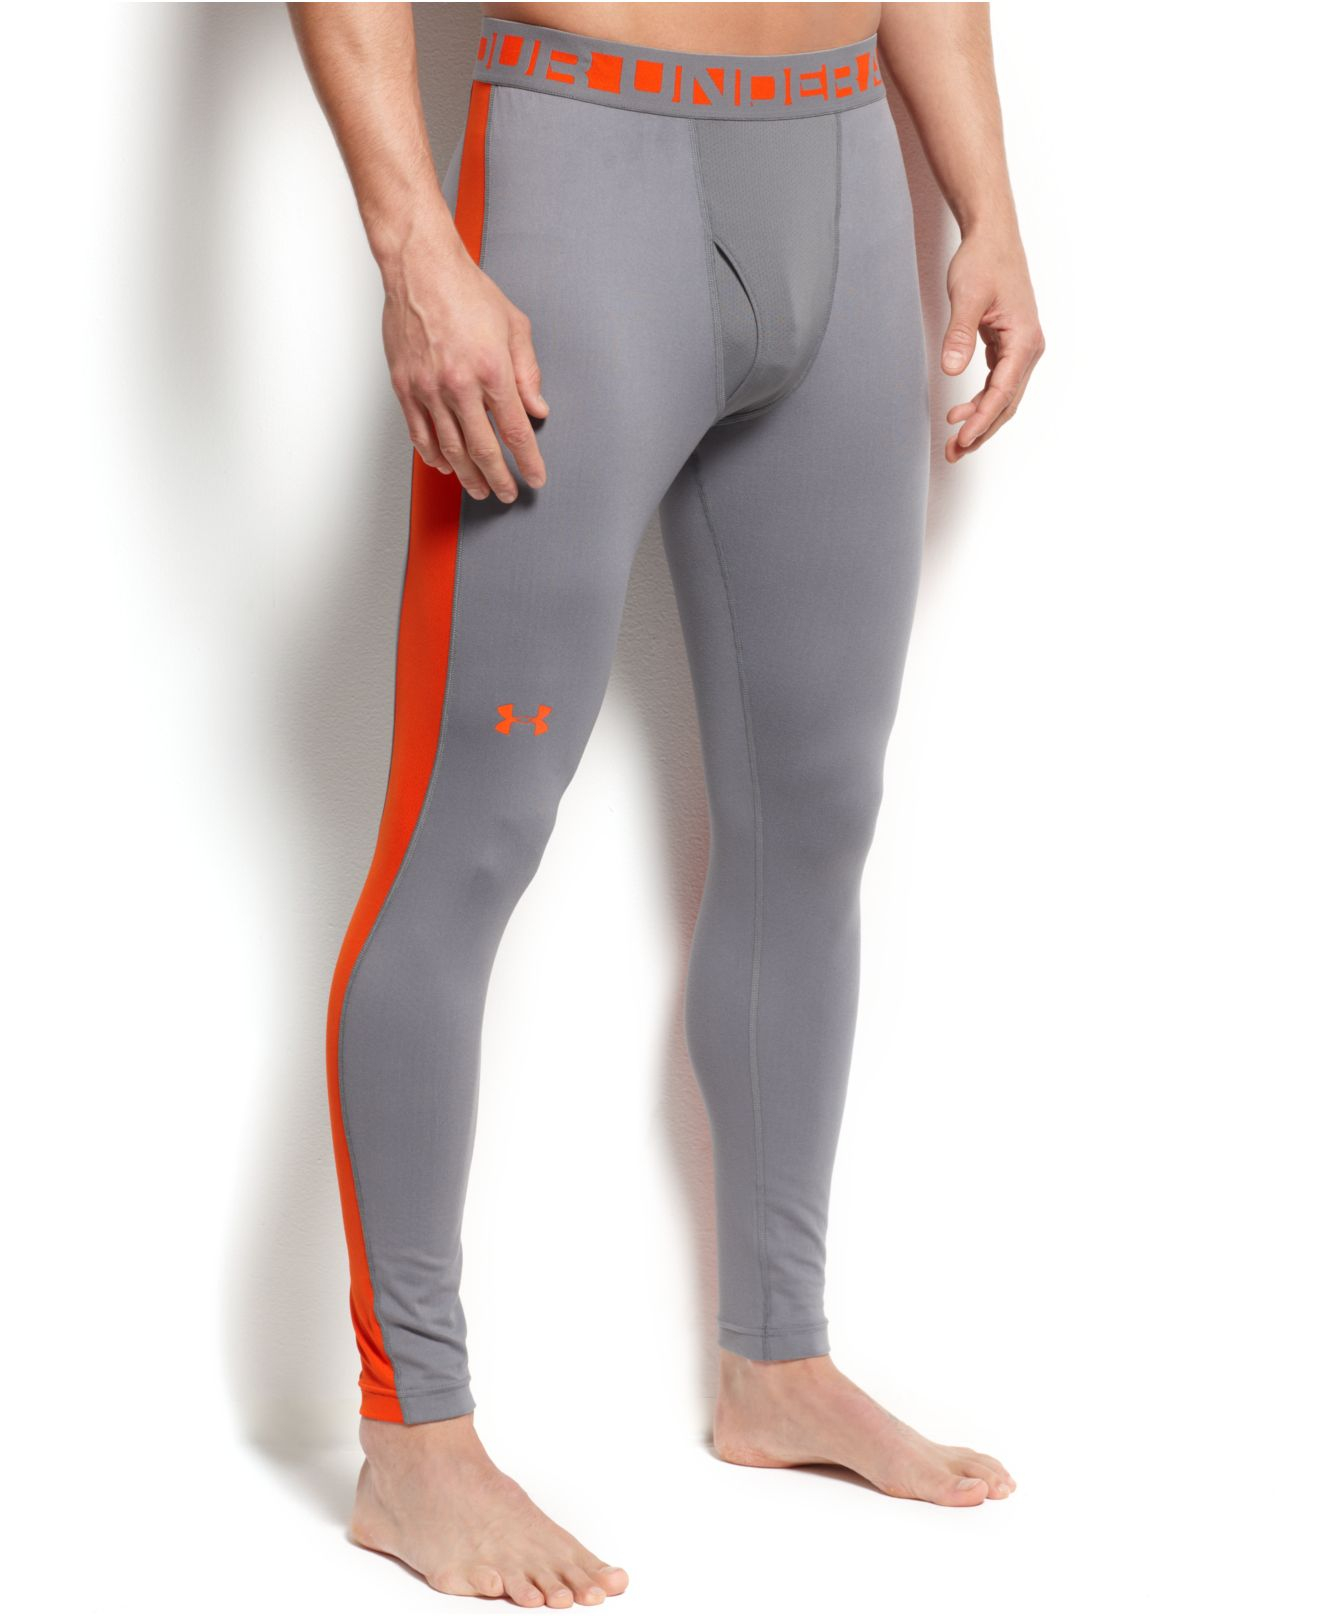 Product Description: Men's UNDER ARMOUR® COLDGEAR® REACTOR RUN TIGHT:: Run smart in your Men's Under Armour ColdGear Reactor Run Tight, with intelligent insulation that adapts and offers just the right breathability and warmth for your activity level.